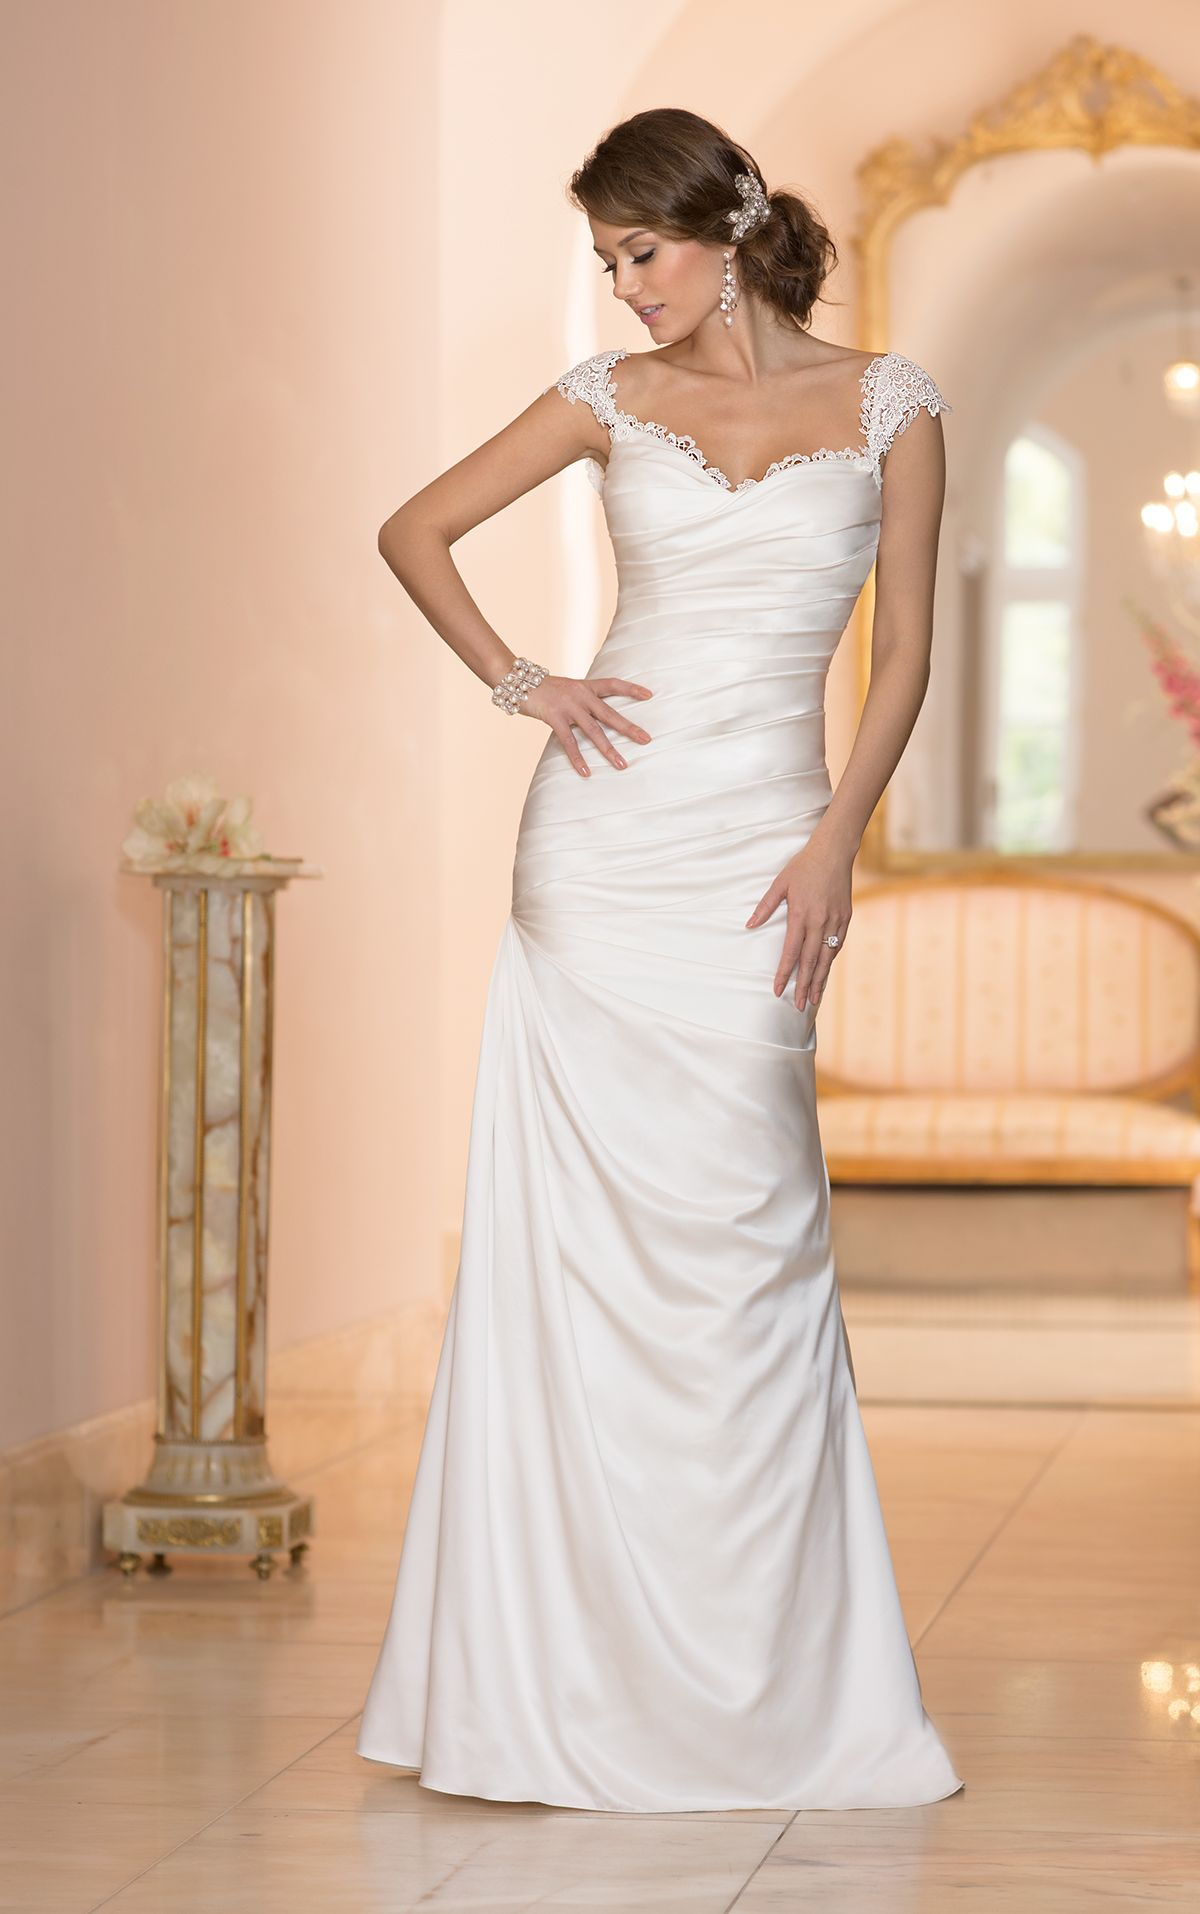 Stella York 5957 699 Debra S Bridal At The Avenues 9365 Philips Highway Jacksonville Fl 32256 904 519 9900